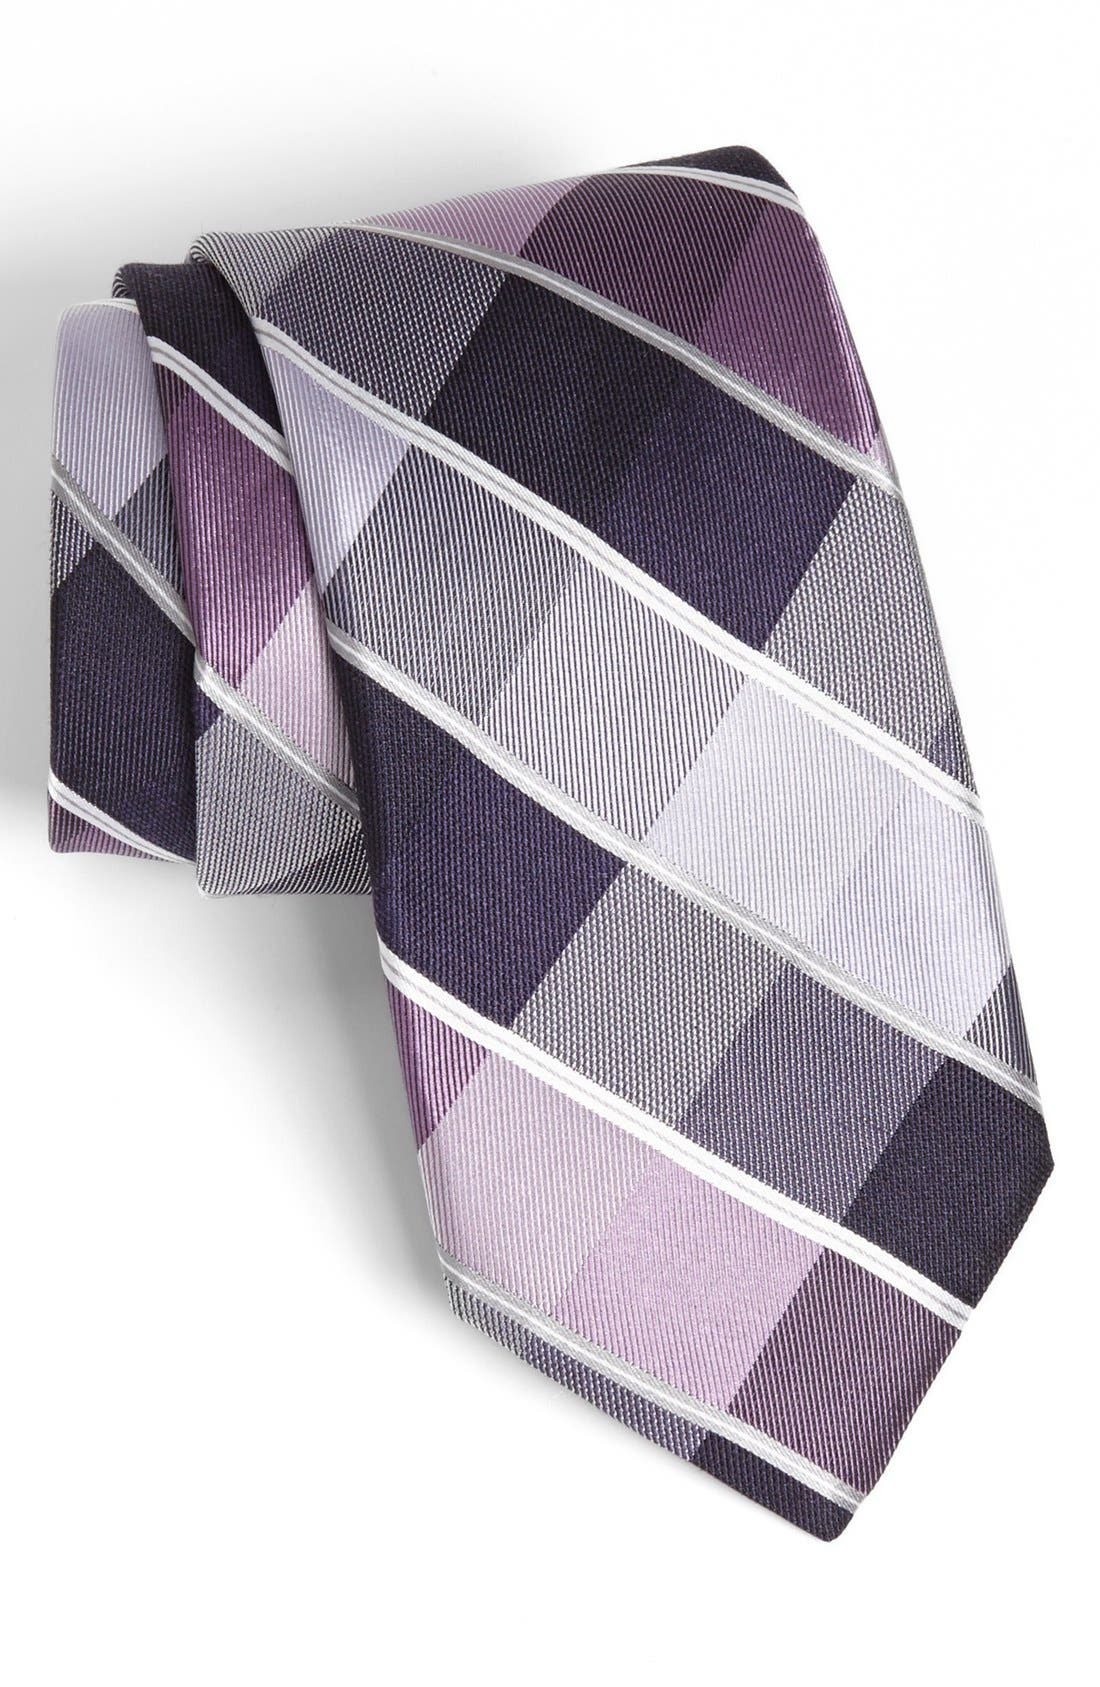 Alternate Image 1 Selected - Michael Kors Woven Tie